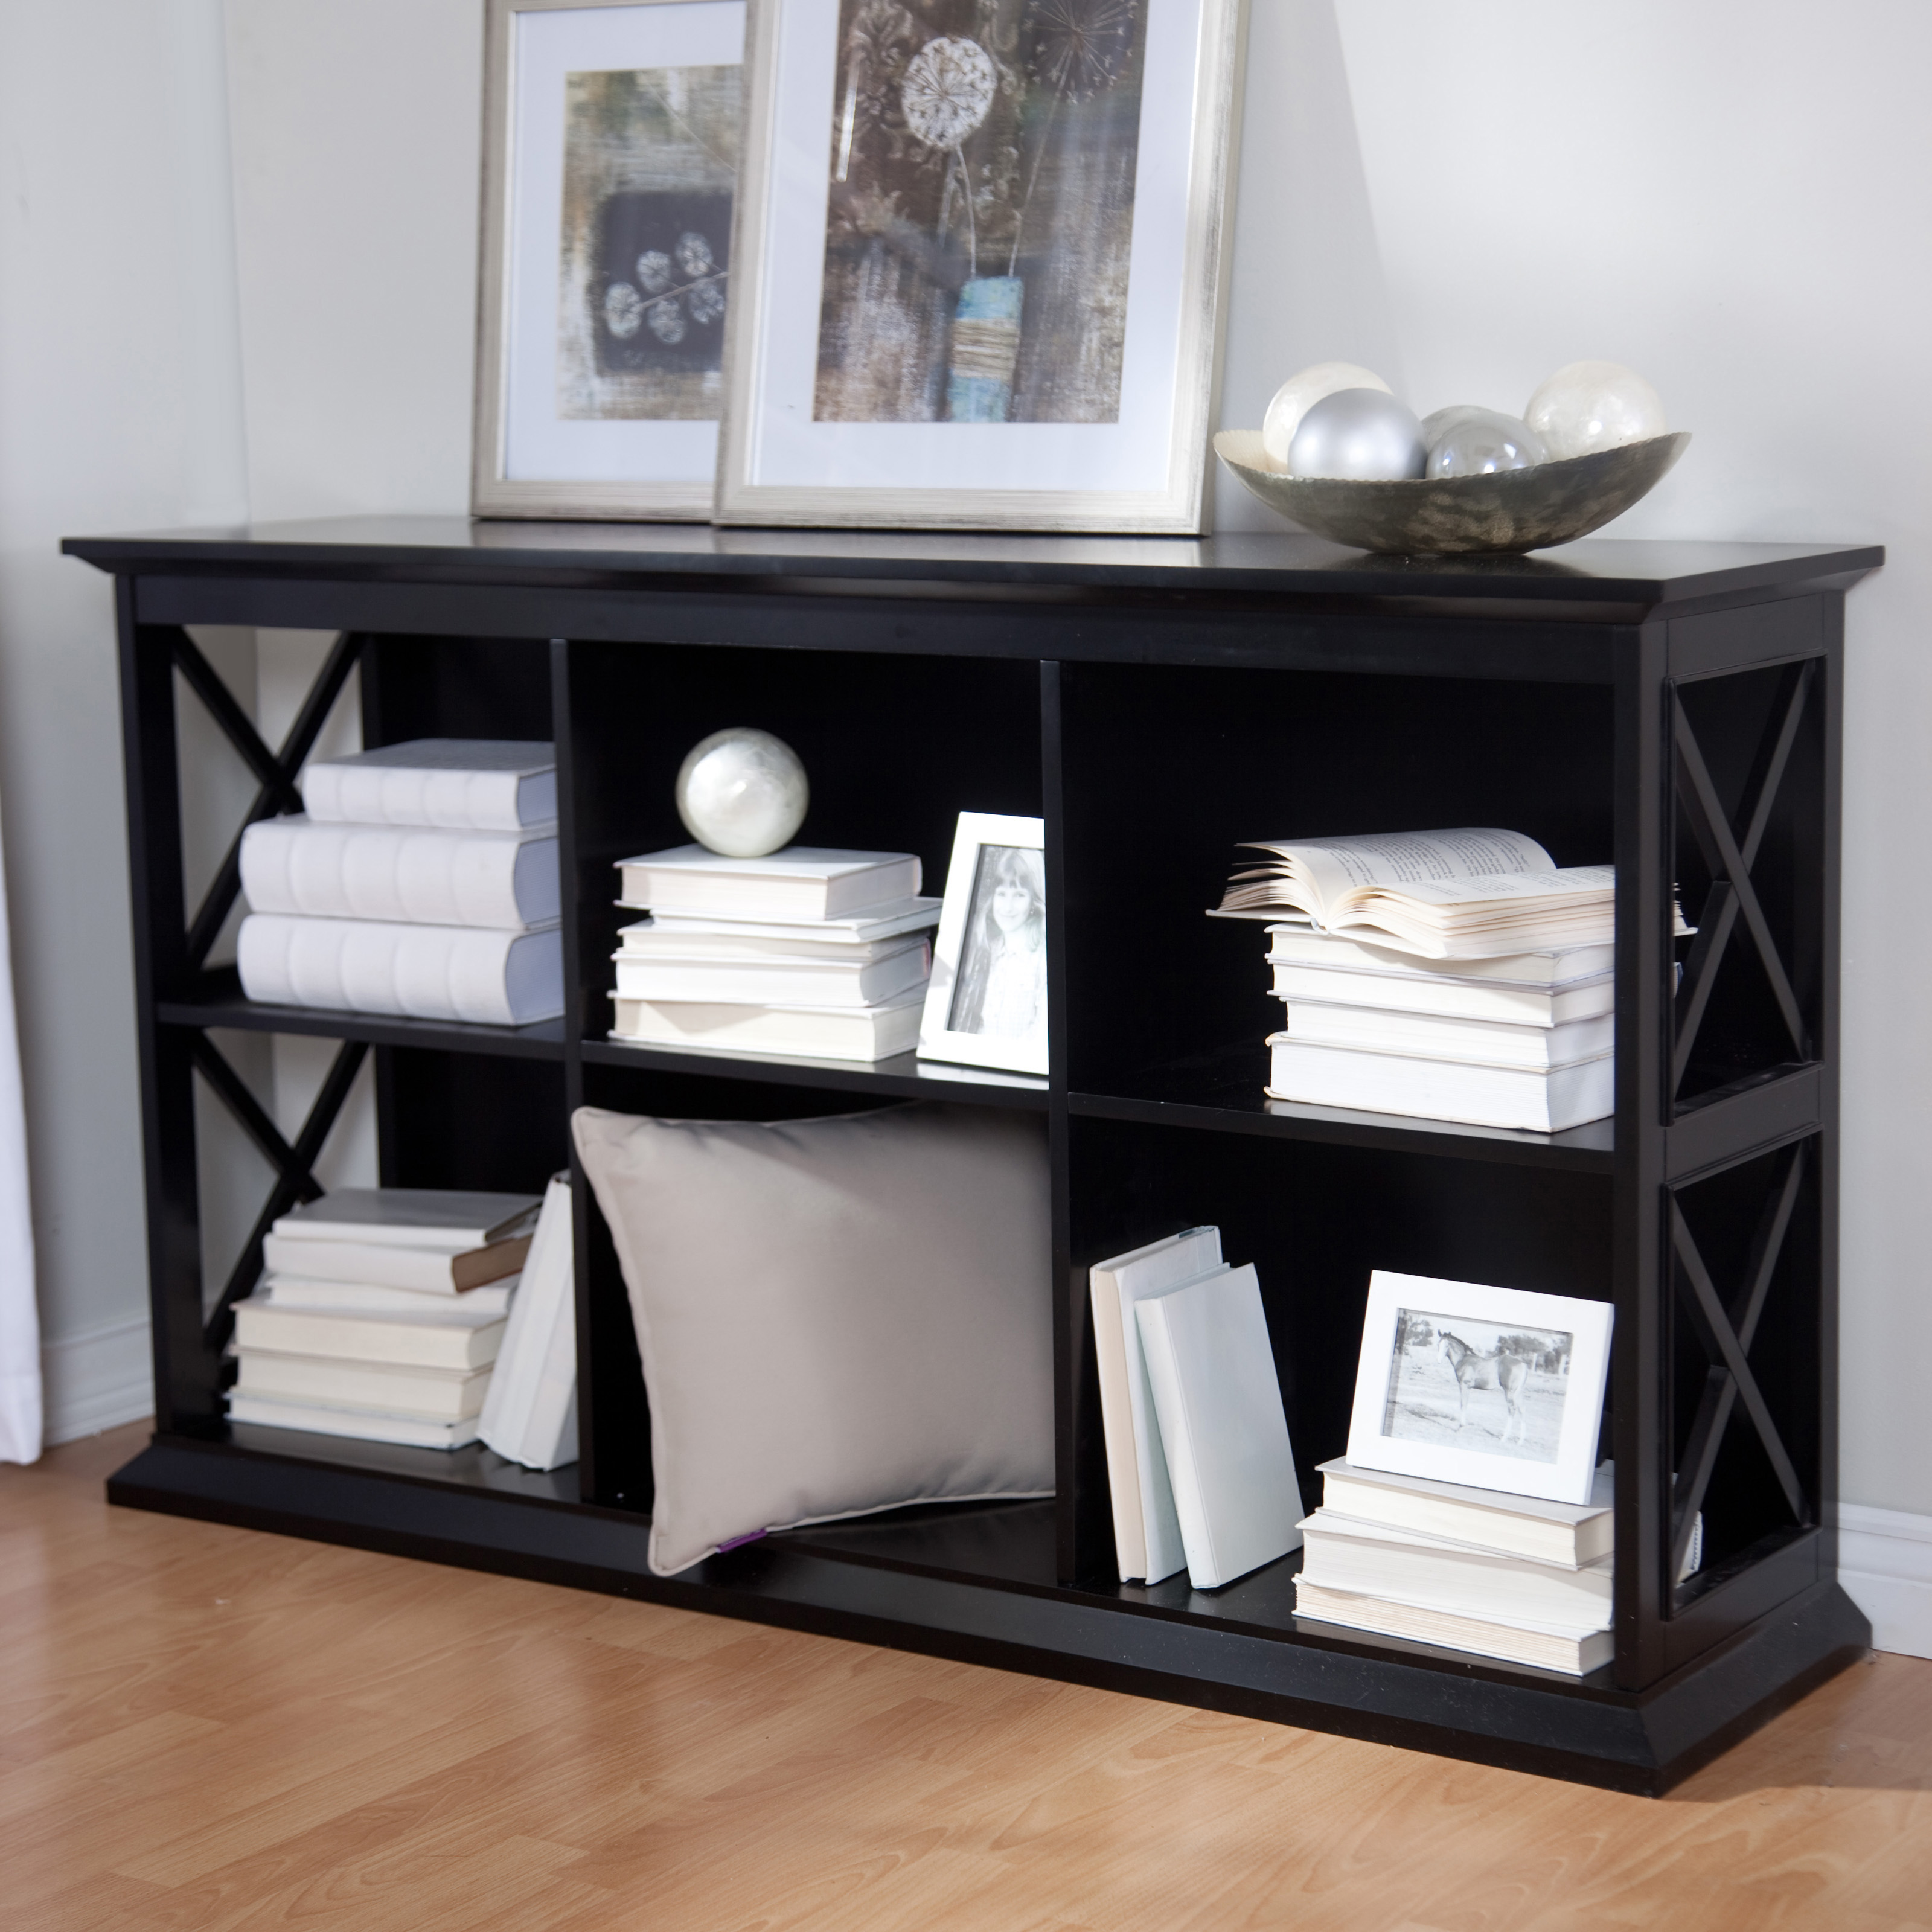 bookshelf of home modern tall delightful glass bookcase additional table collection bookcases black with awesome looking doors decorators astonishing magnificent good